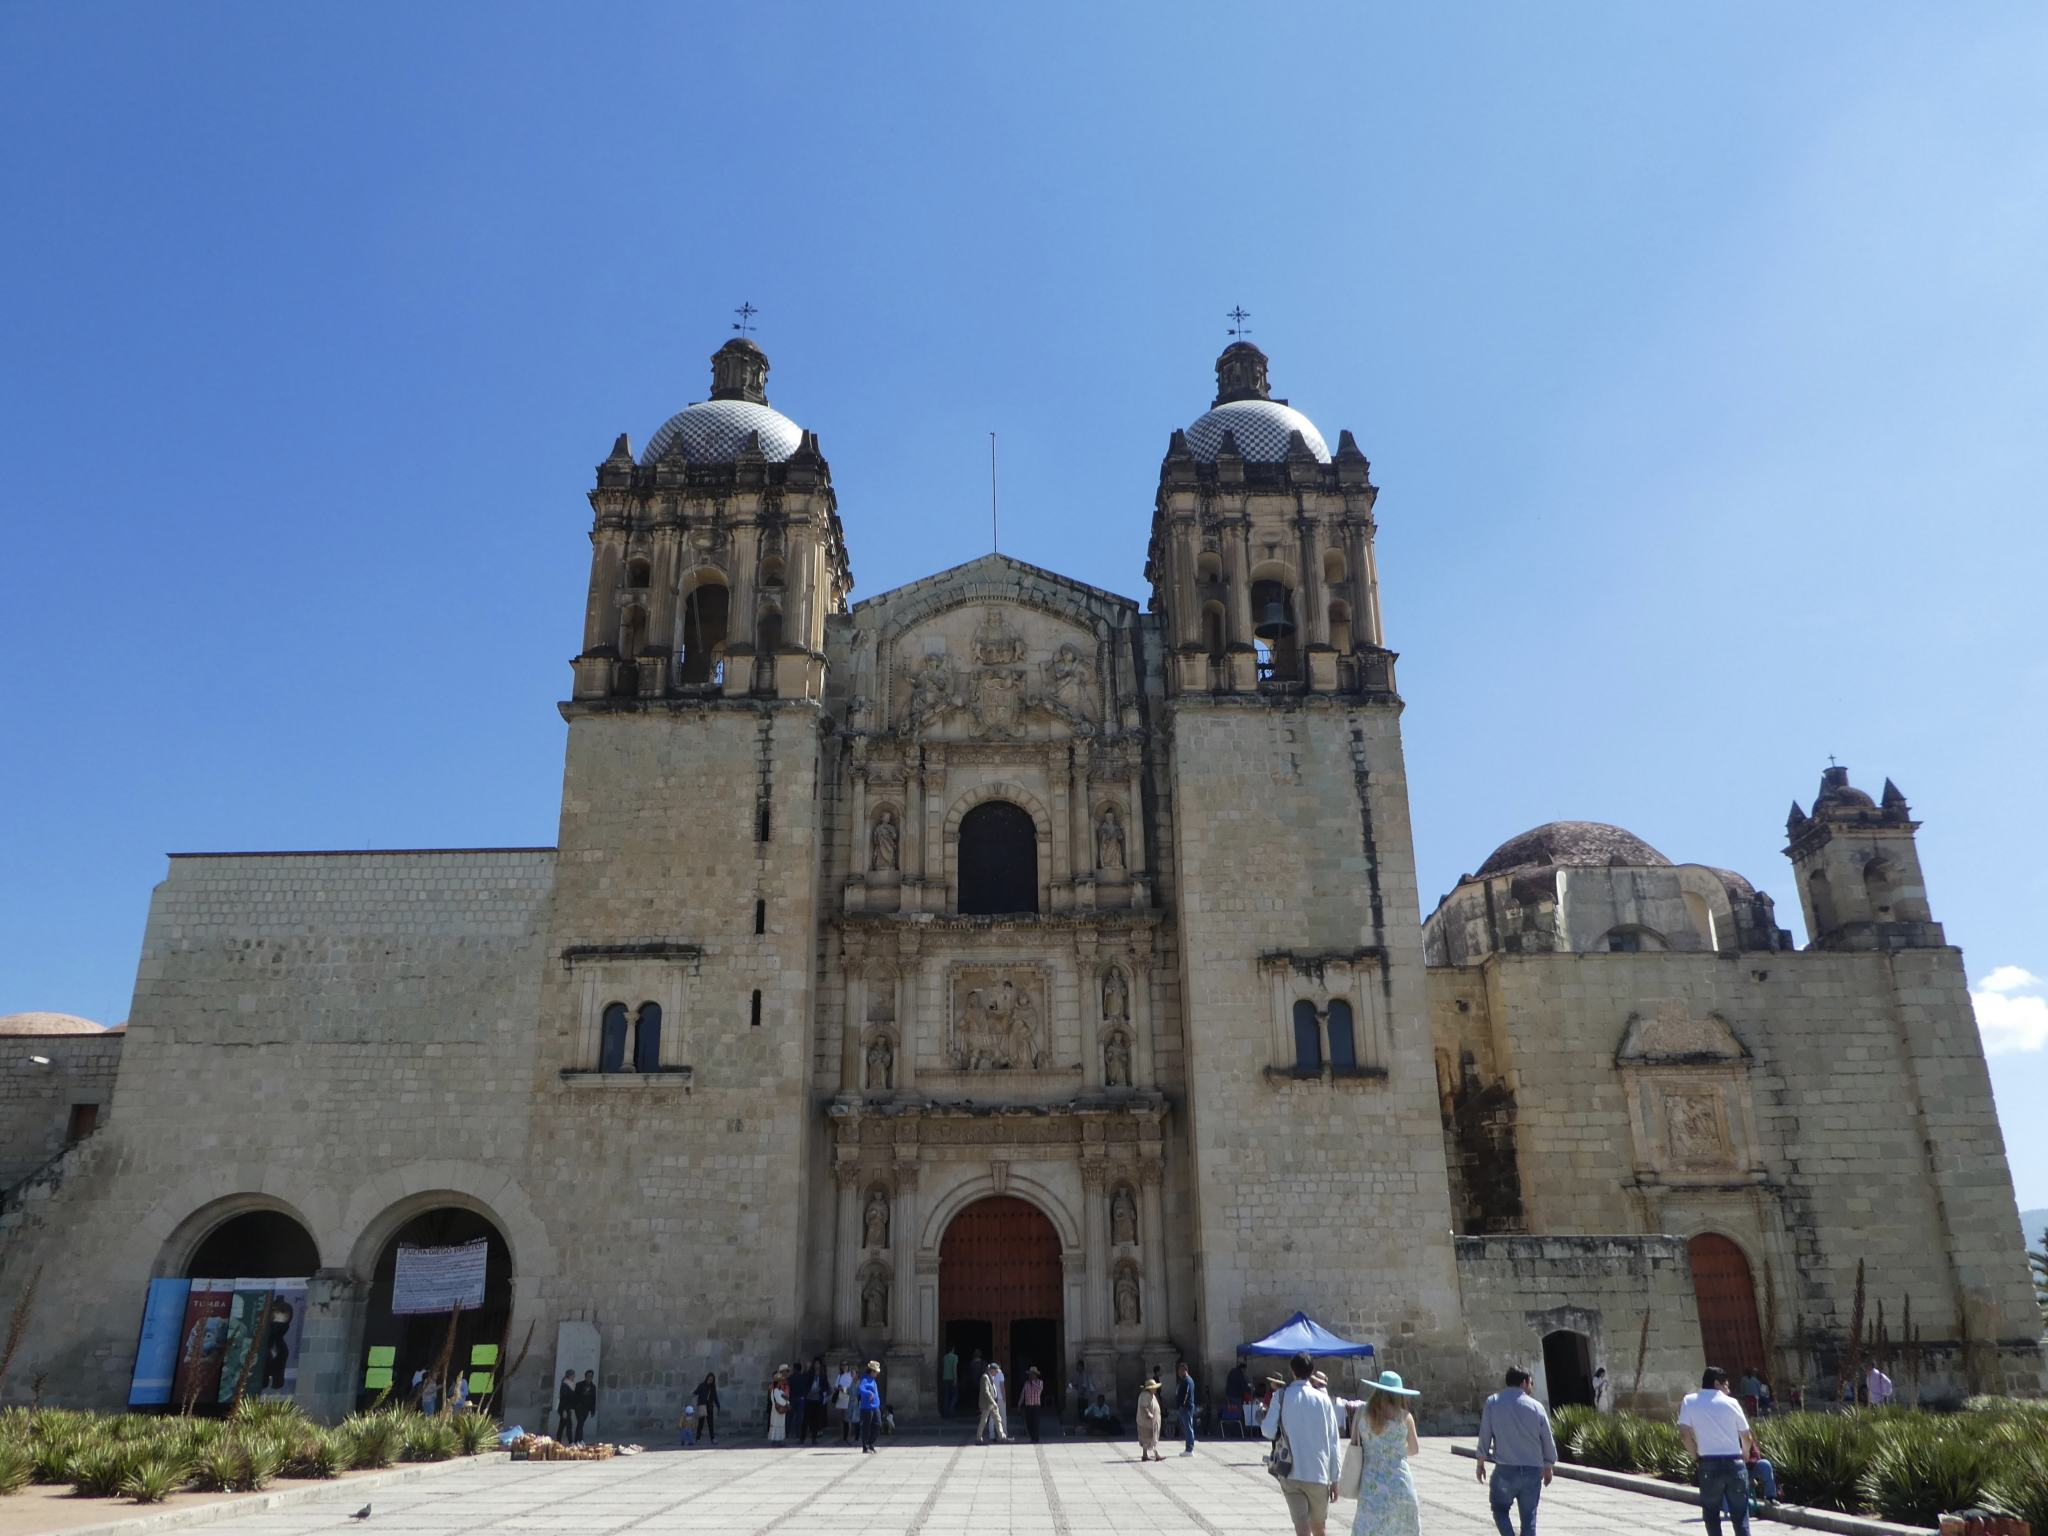 Oaxaca and Pueblos Mancomunados walk (25 to 31 January 2020)